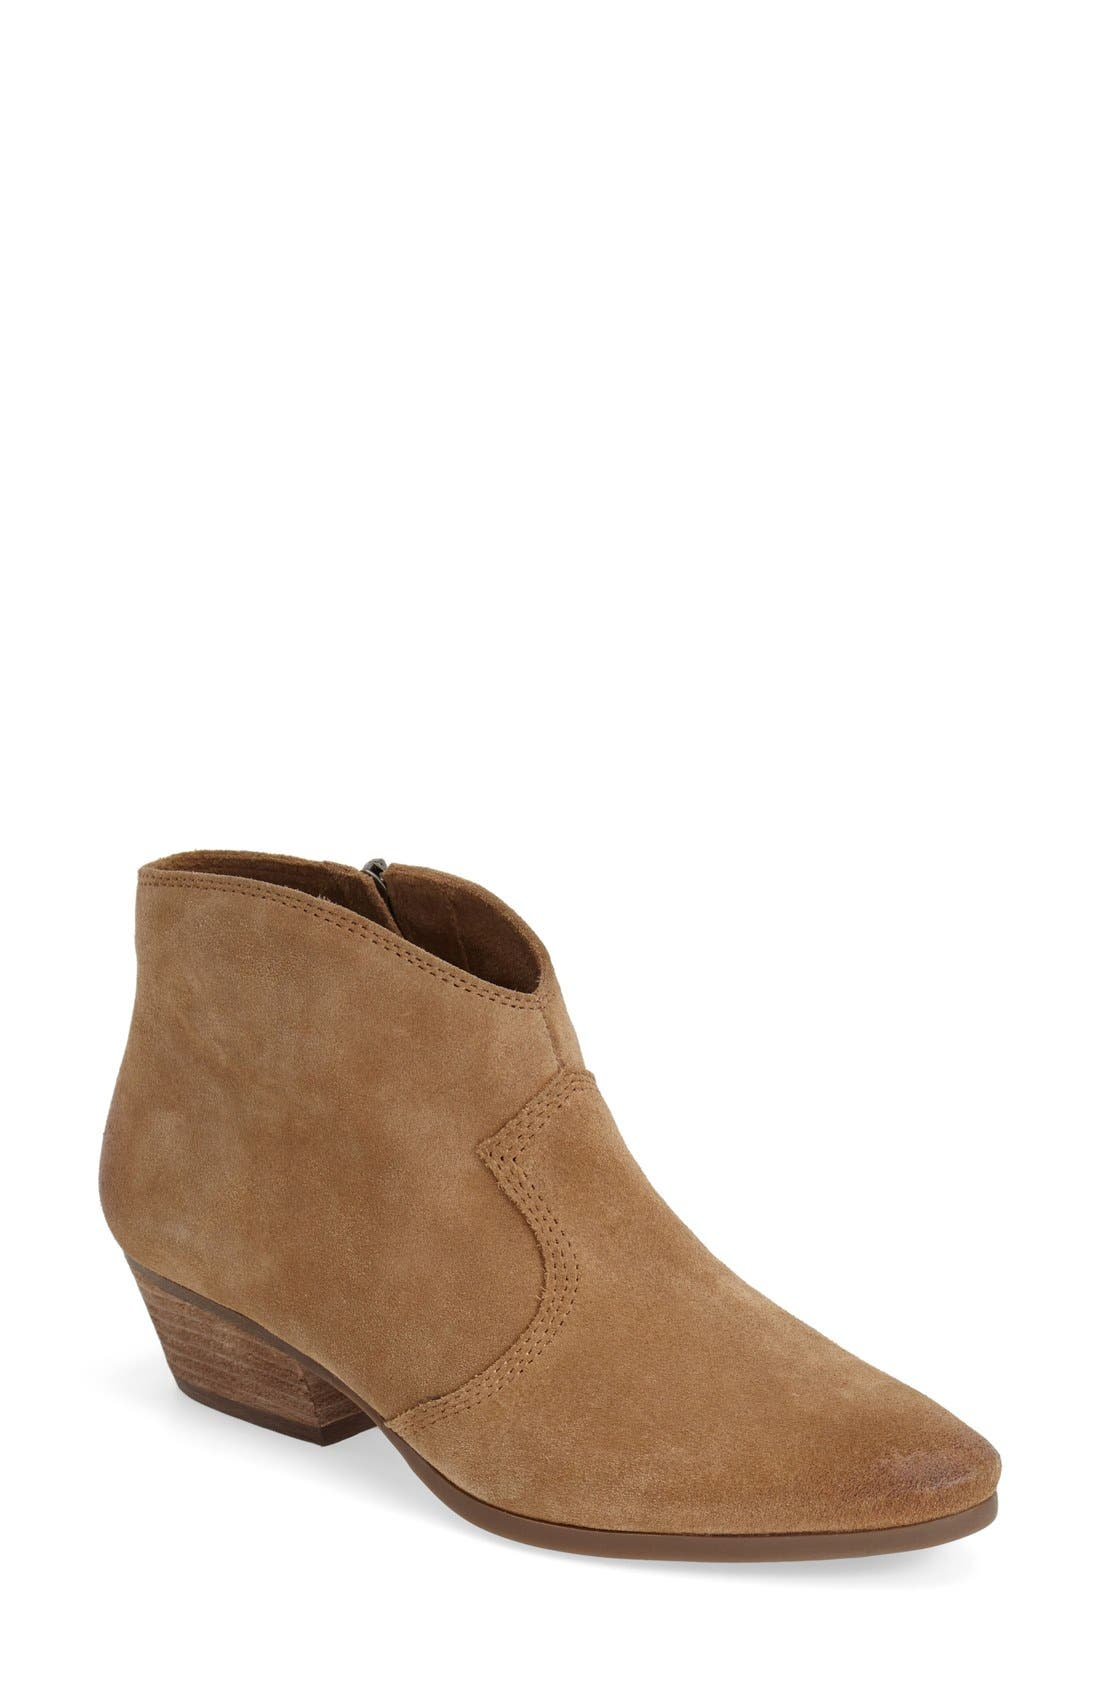 Main Image - Vince Camuto 'Cider' Bootie (Women)